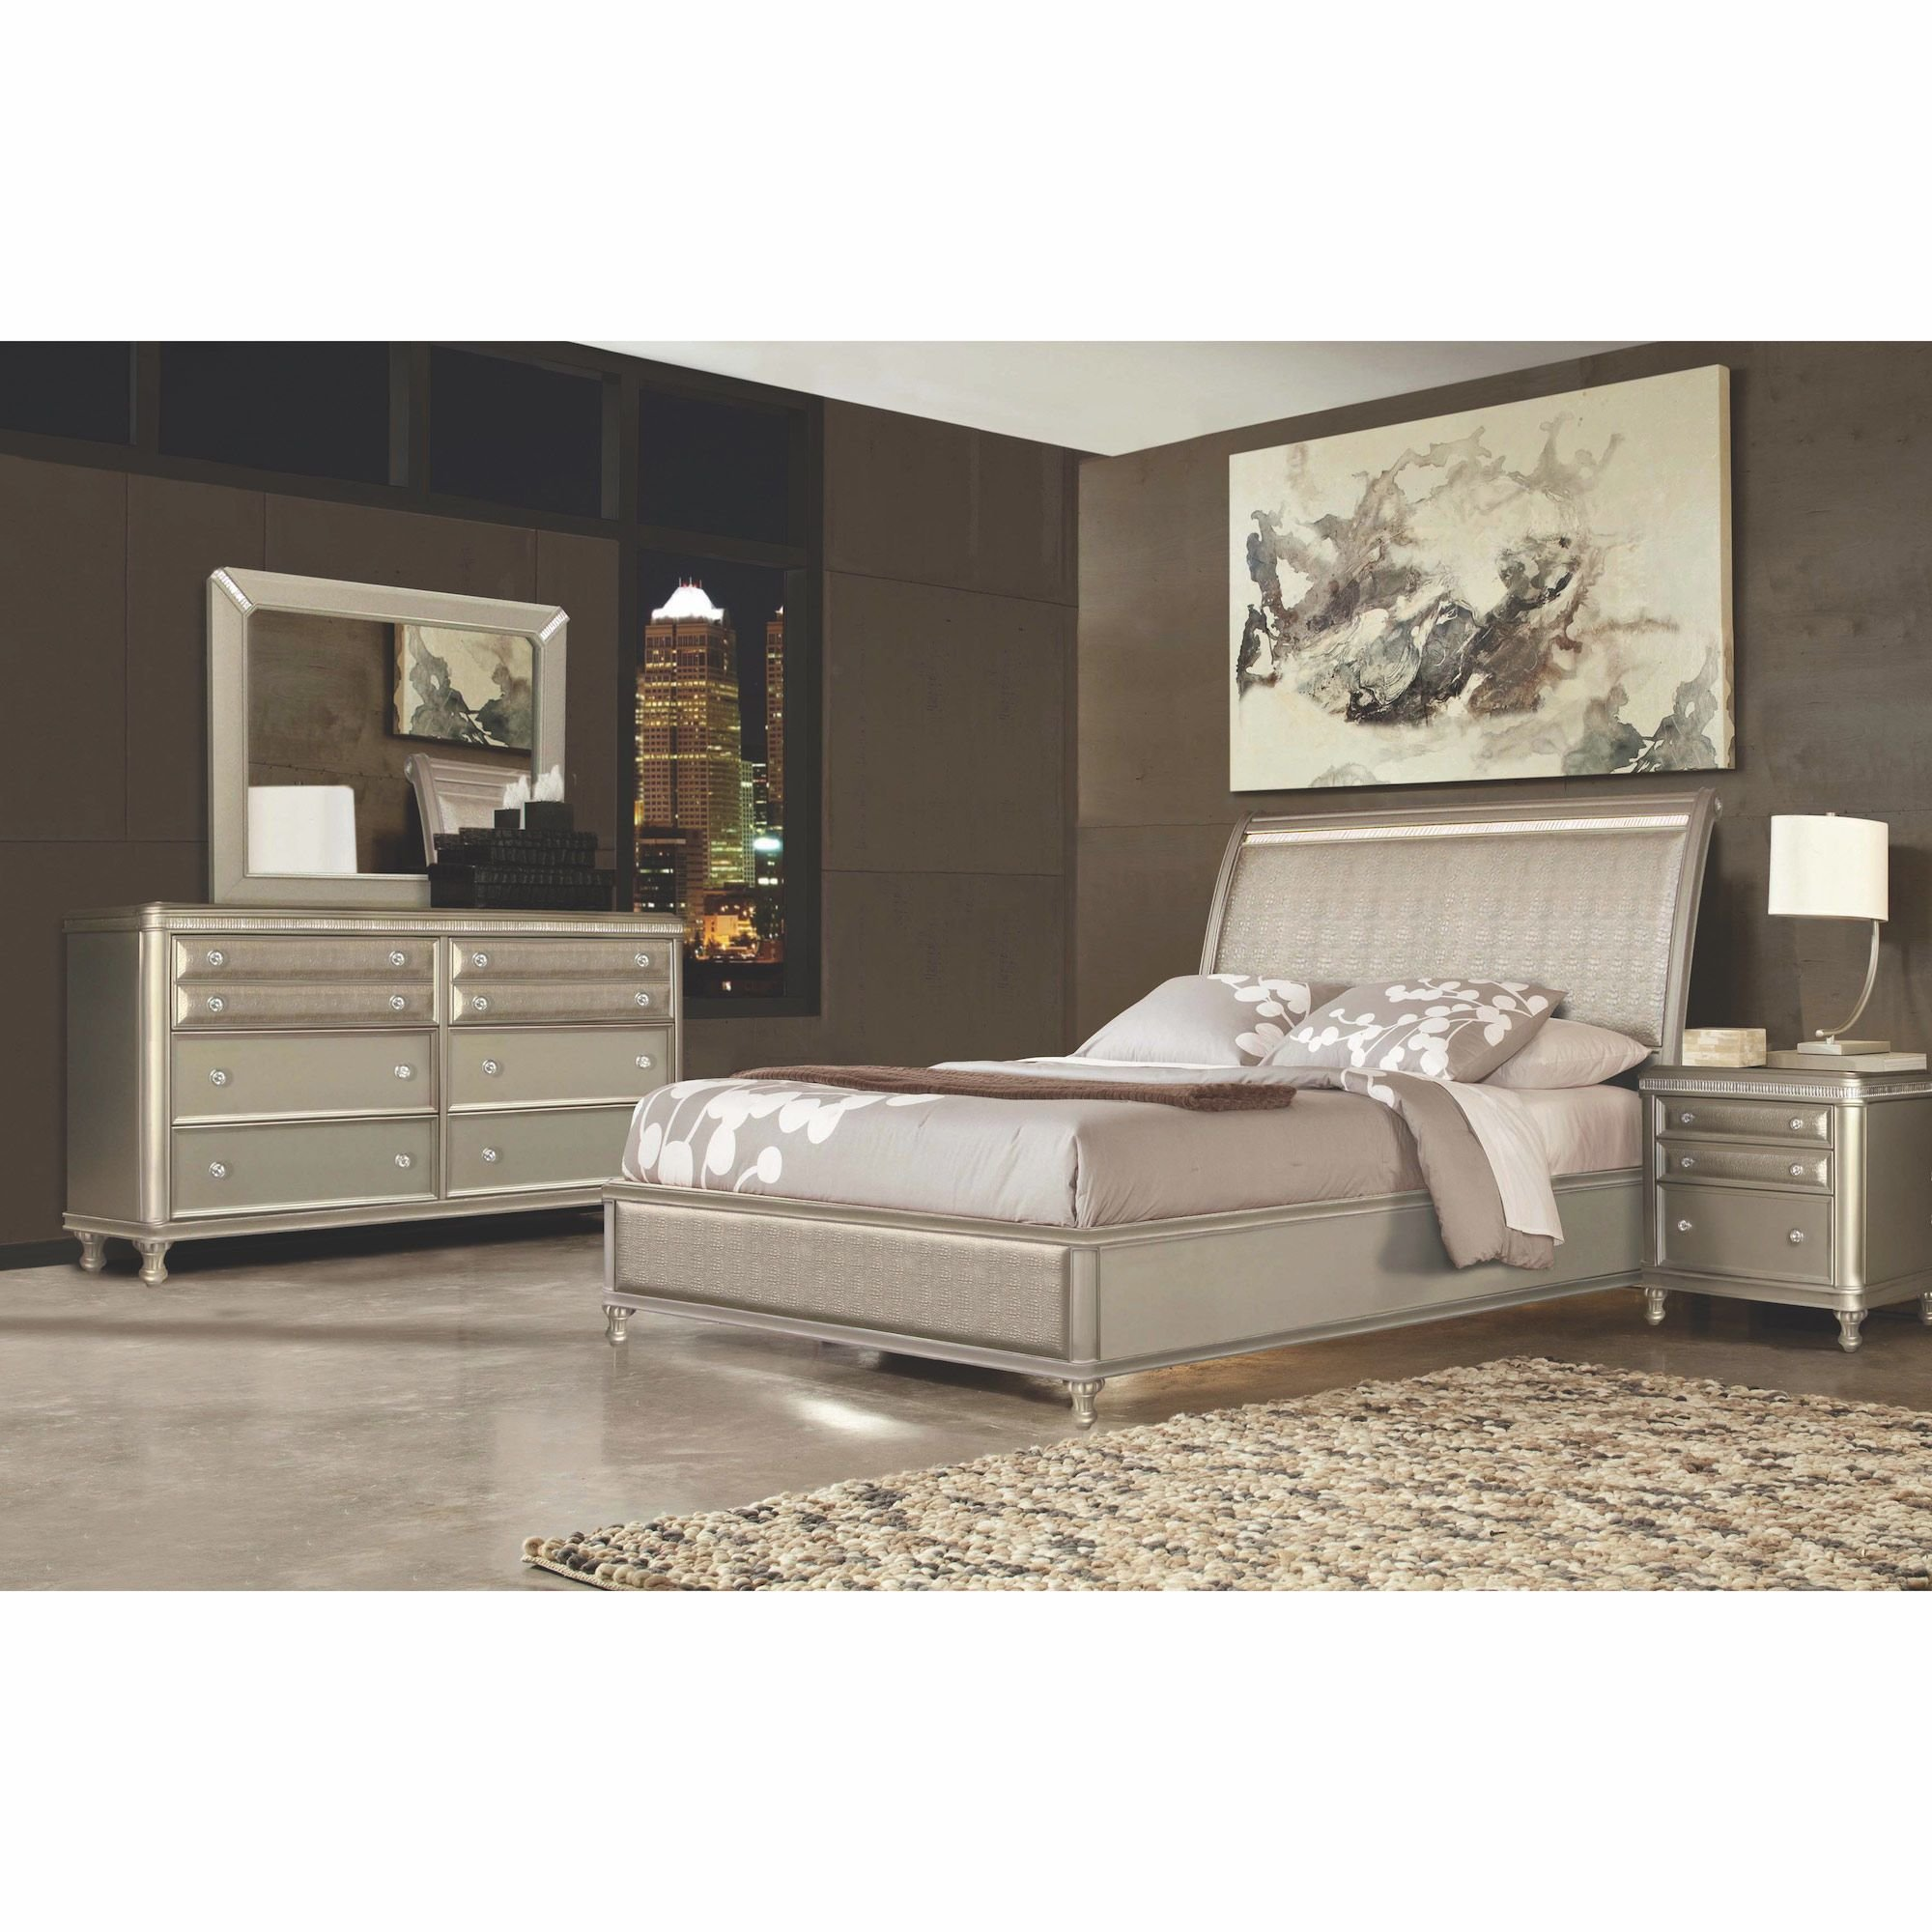 Best Rivers Edge Bedroom Set Bindu Bhatia Astrology With Pictures